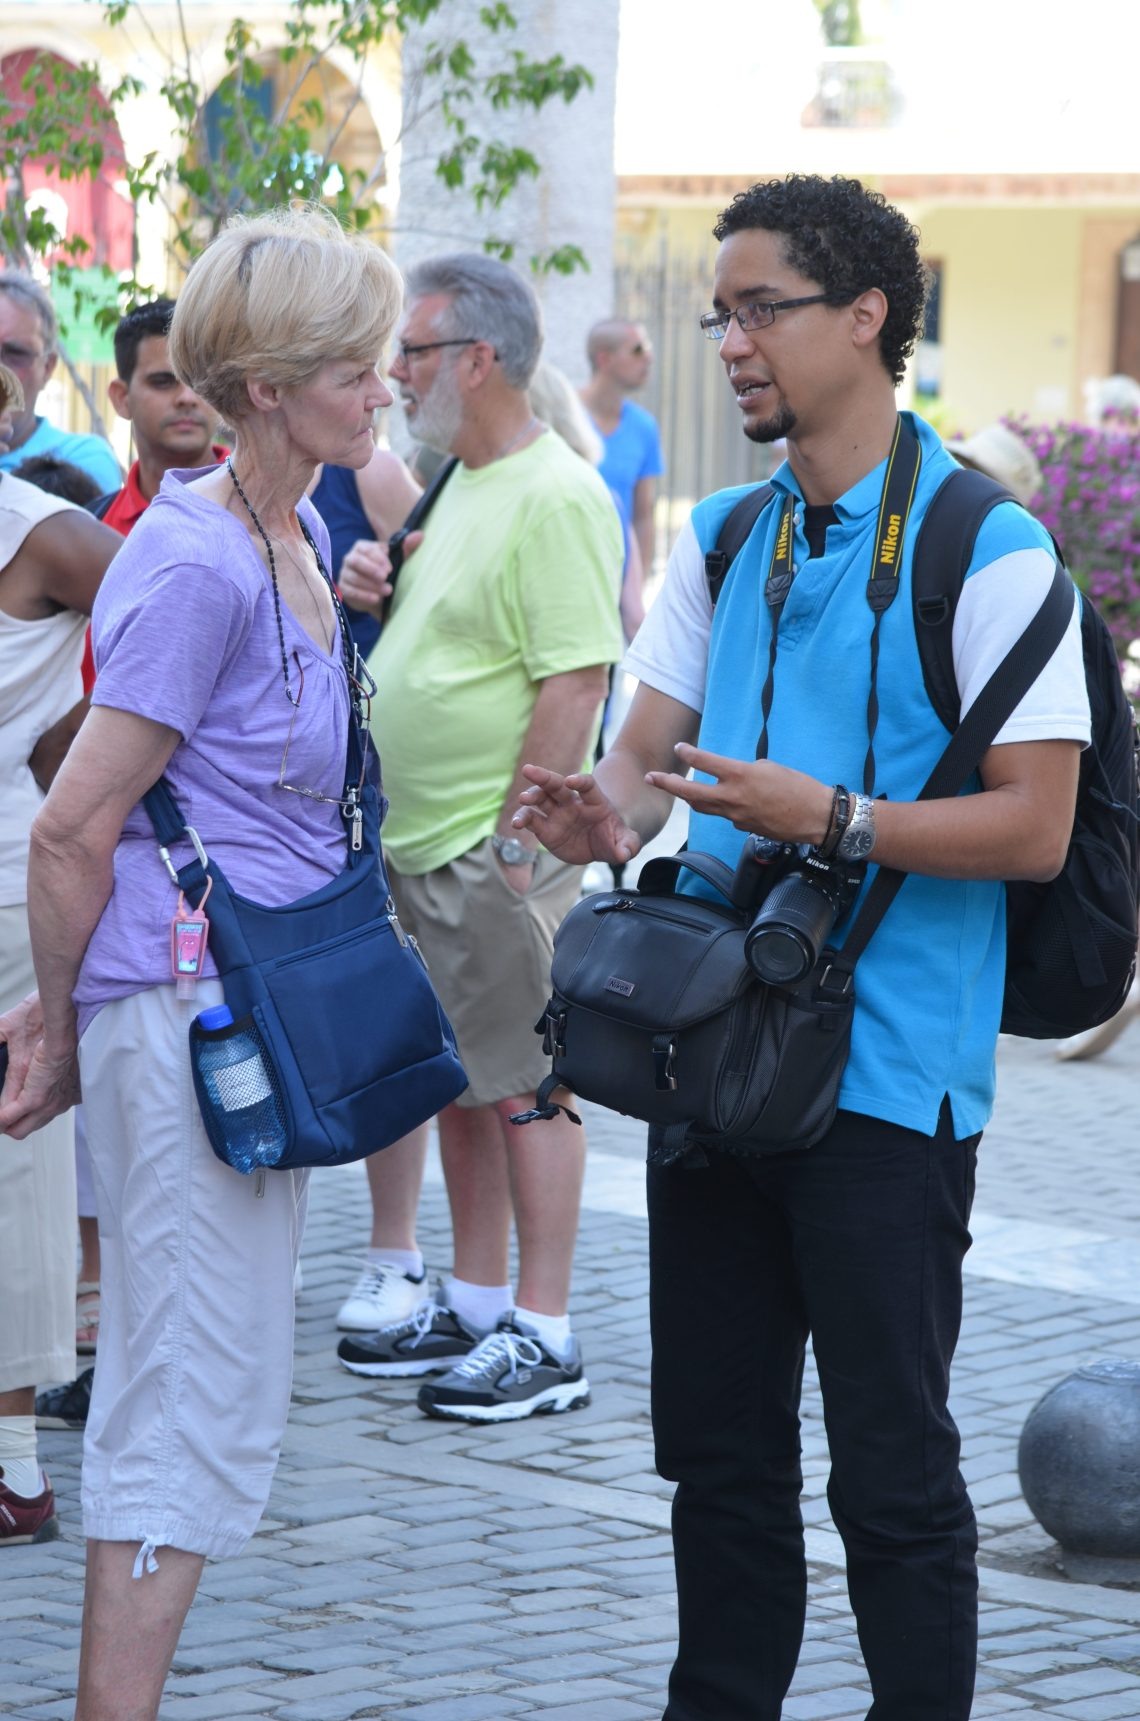 Dr. Jorge Arrocha (right) accompanies tour participants.